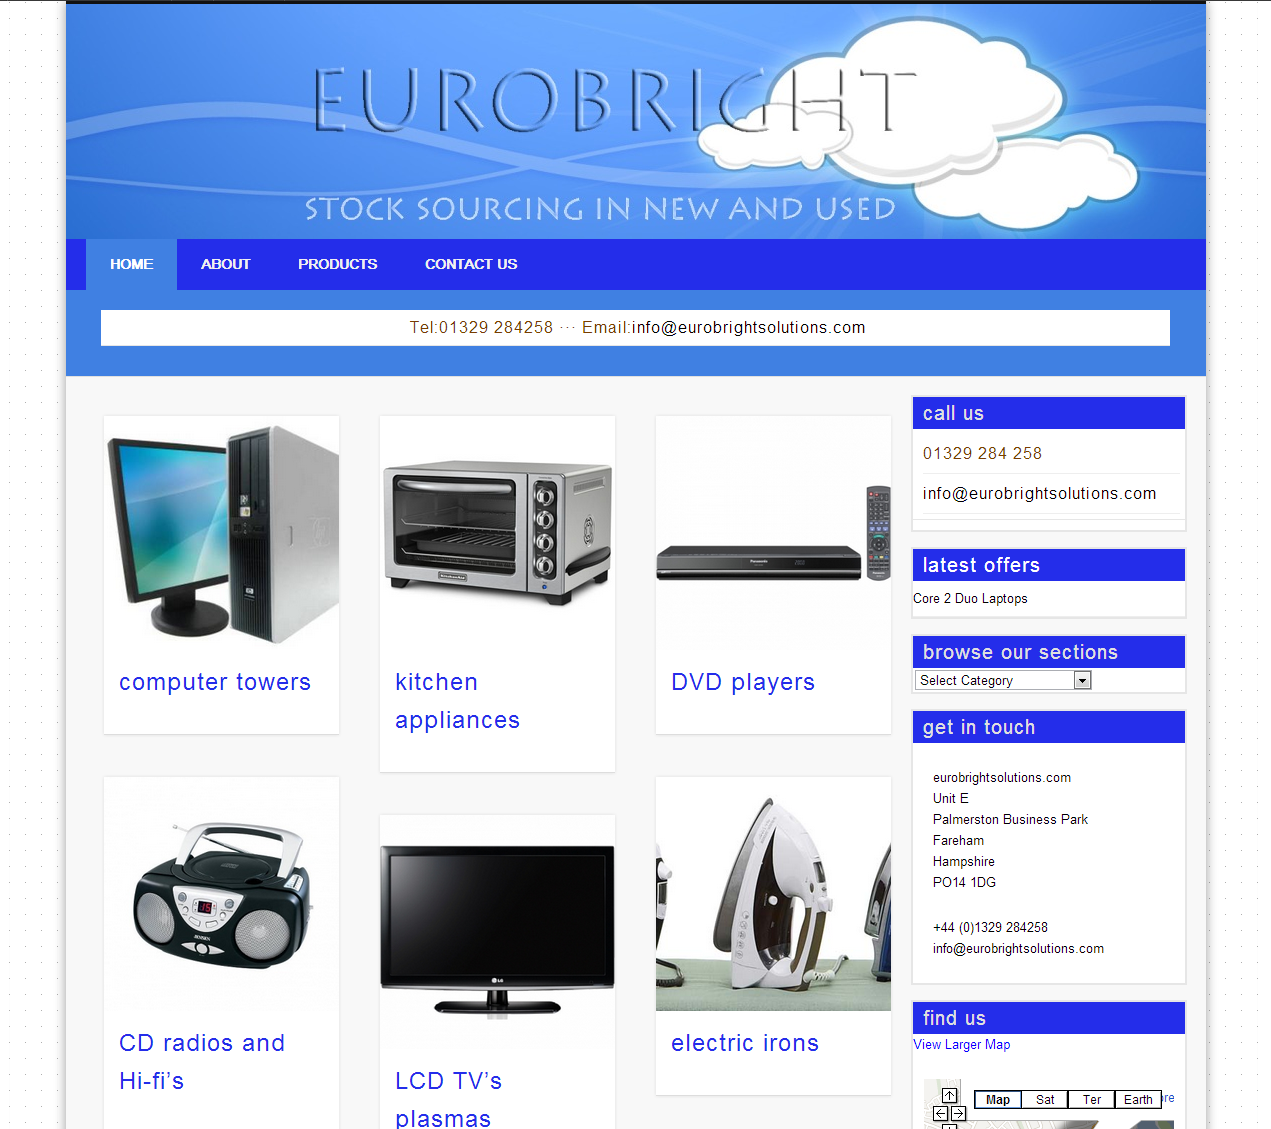 eurobrightsolutions.com » Stock sourcing in new and used